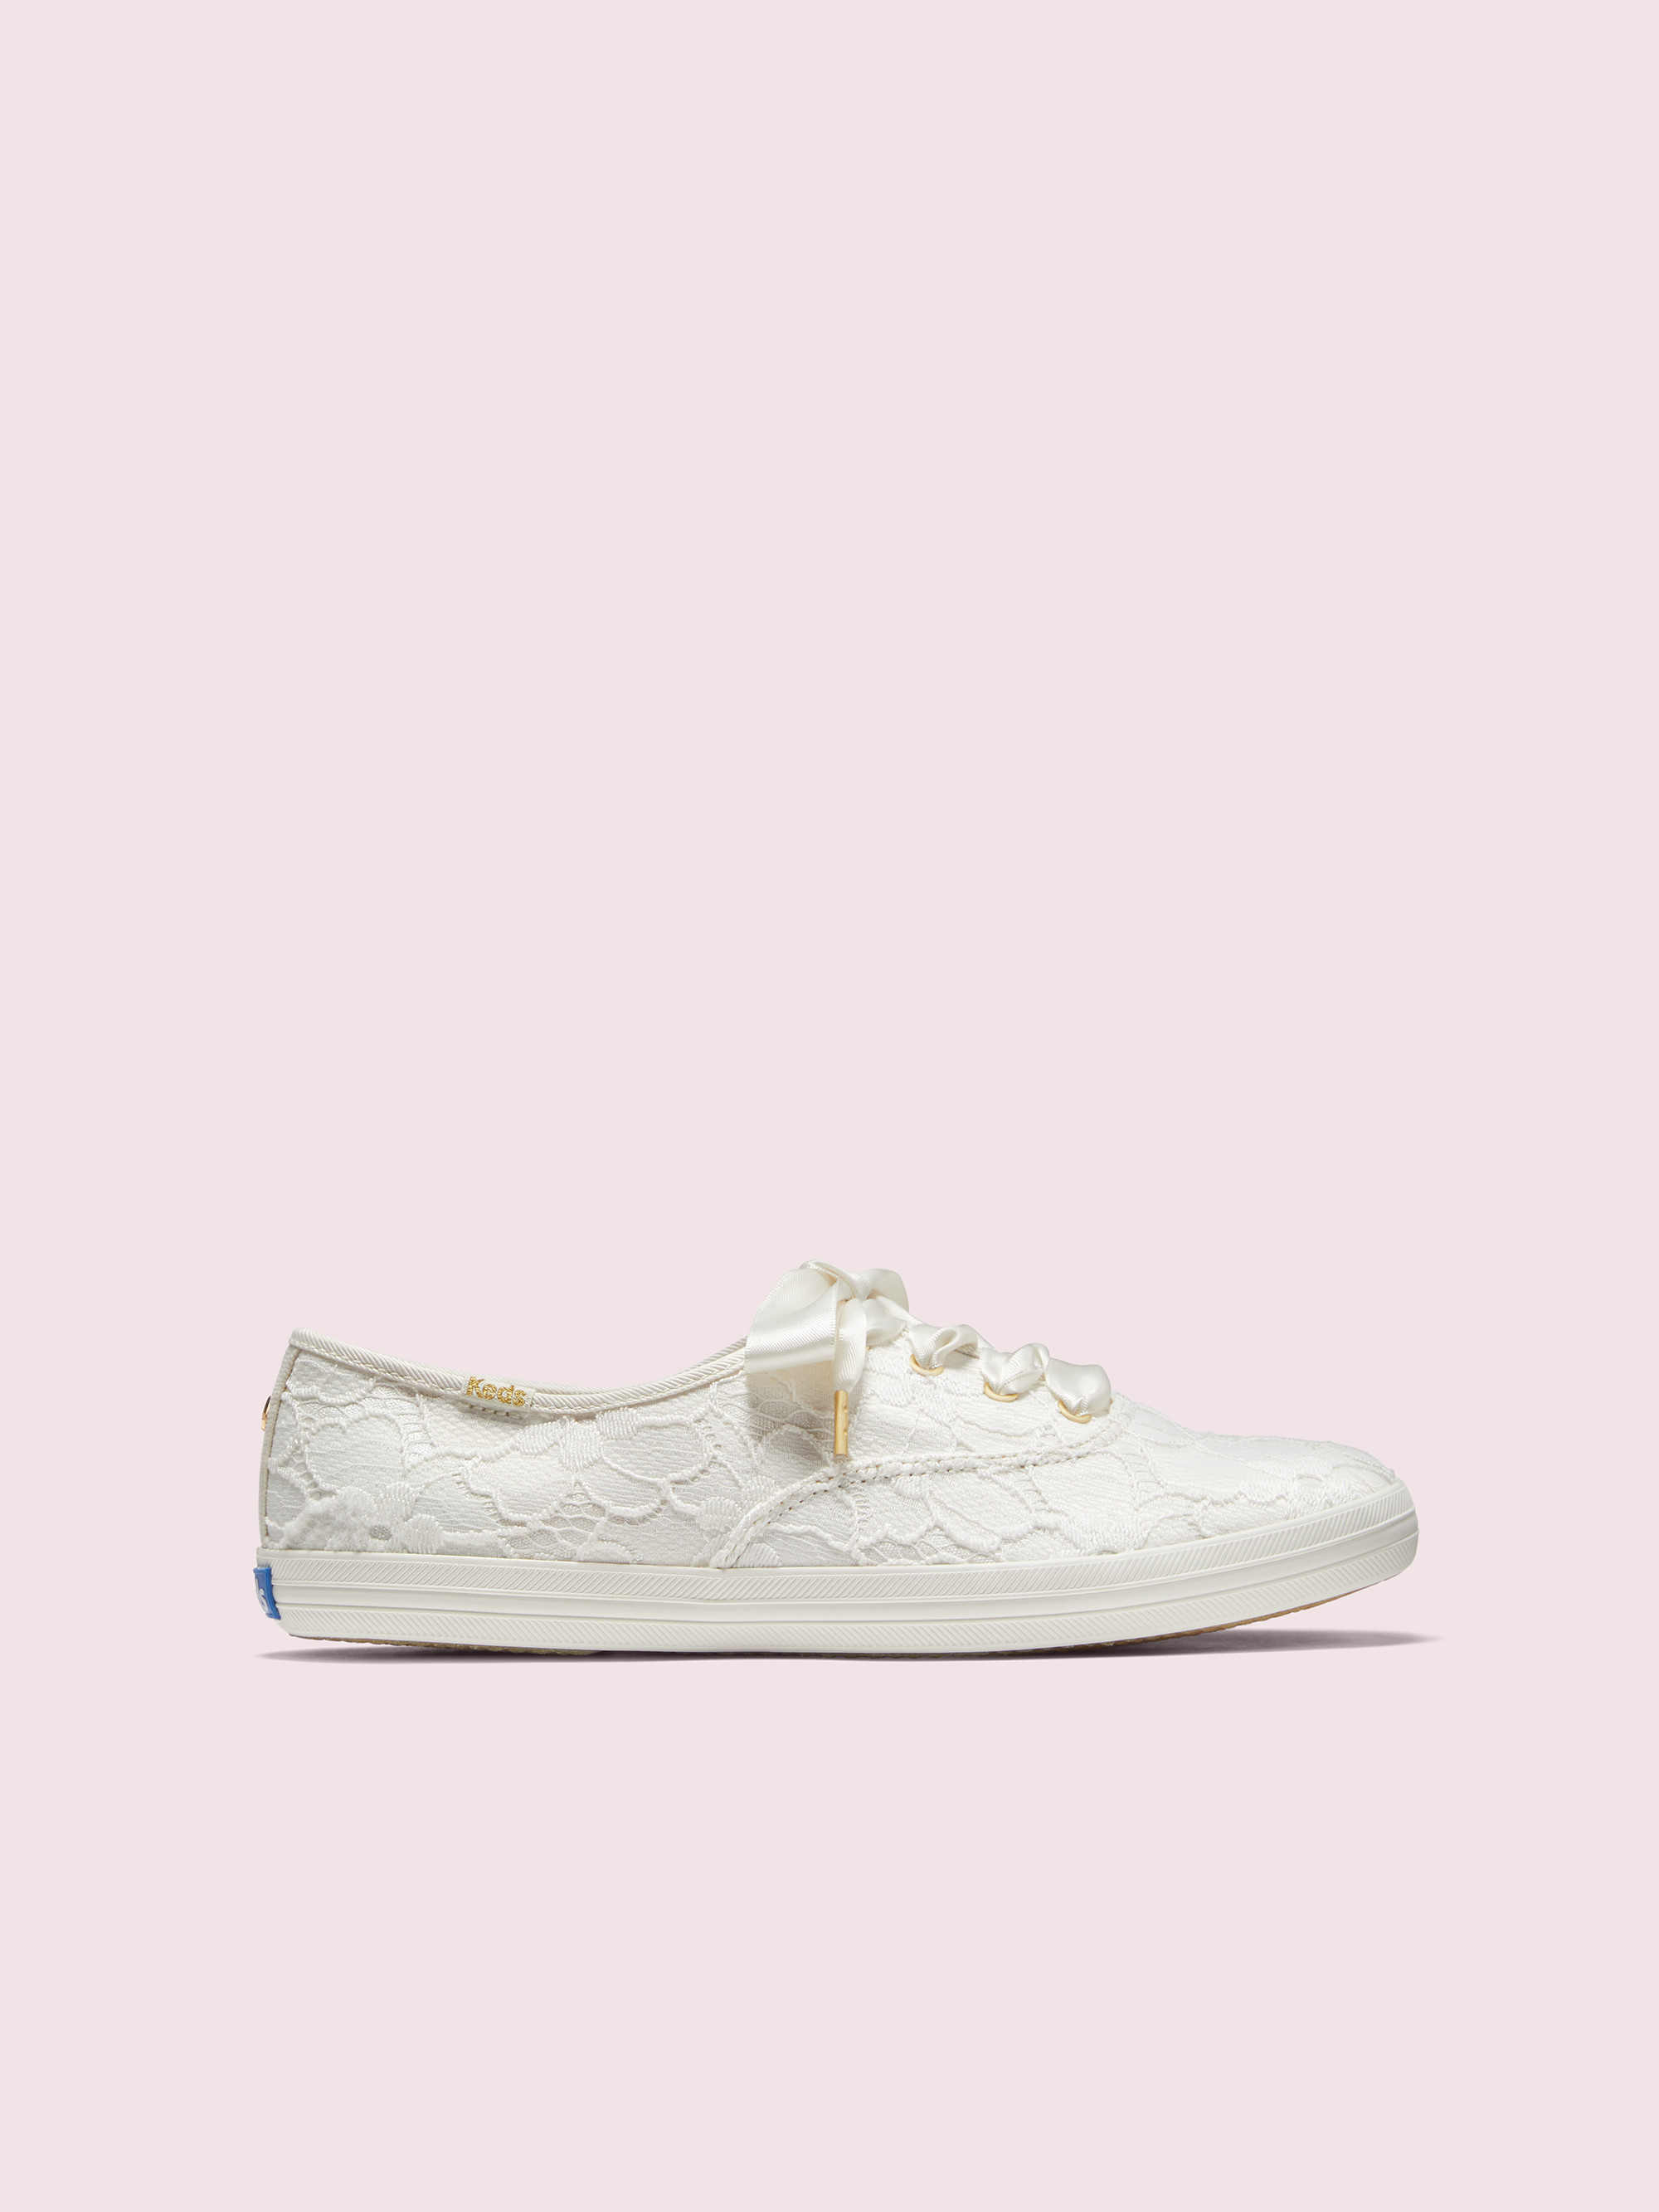 keds x kate spade new york champion lace sneakers